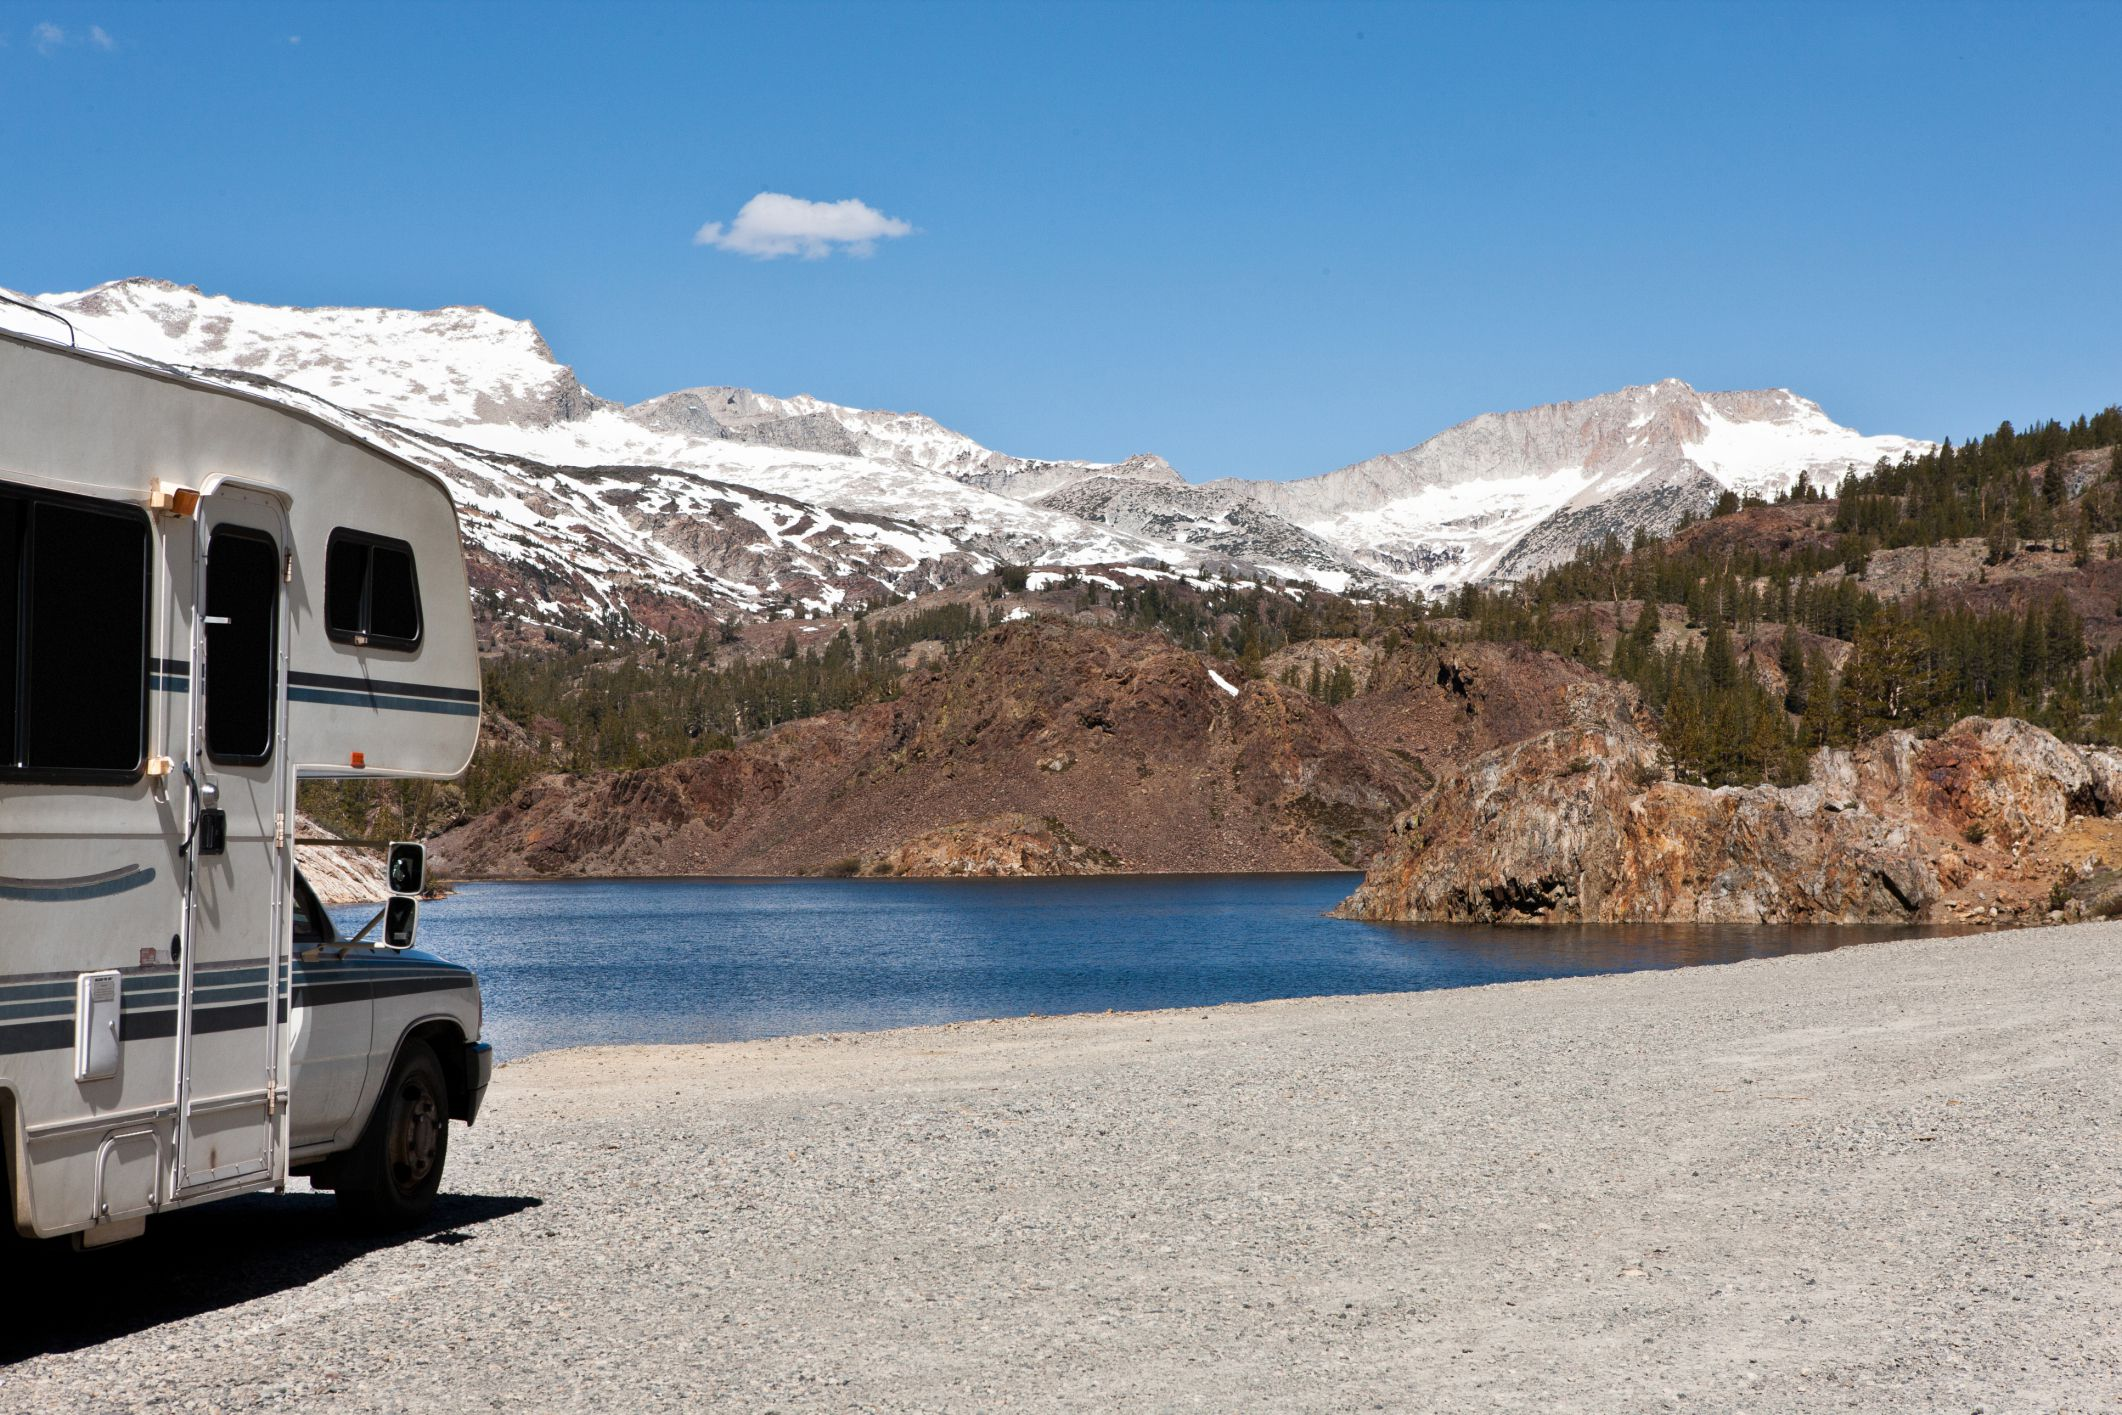 3 National Parks That Offer RV Hookups for Travelers on yosemite rv parks map, cody wyoming rv parks map, black hills rv parks map,